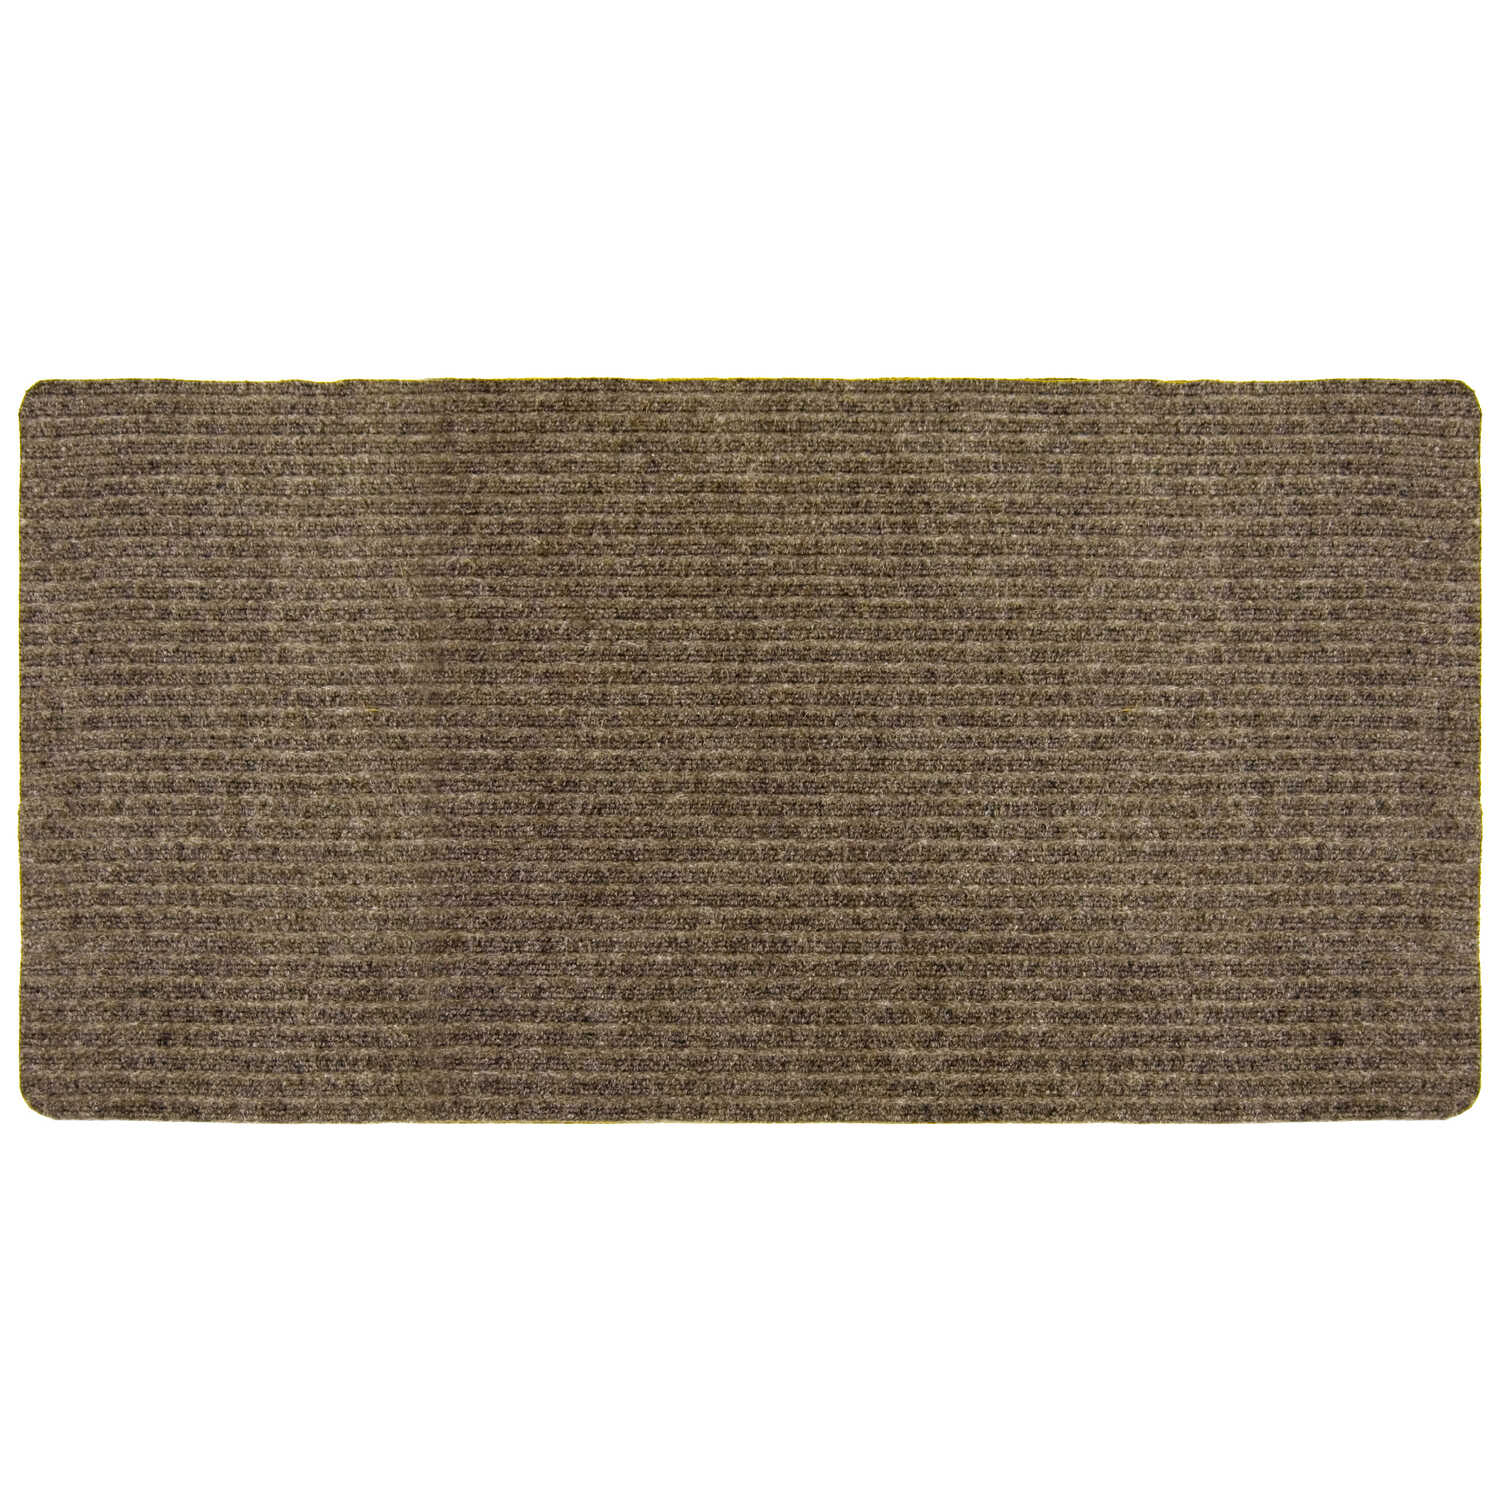 Multy Home  Tan  Polypropylene  Nonslip Utility Mat  60 in. L x 24 in. W